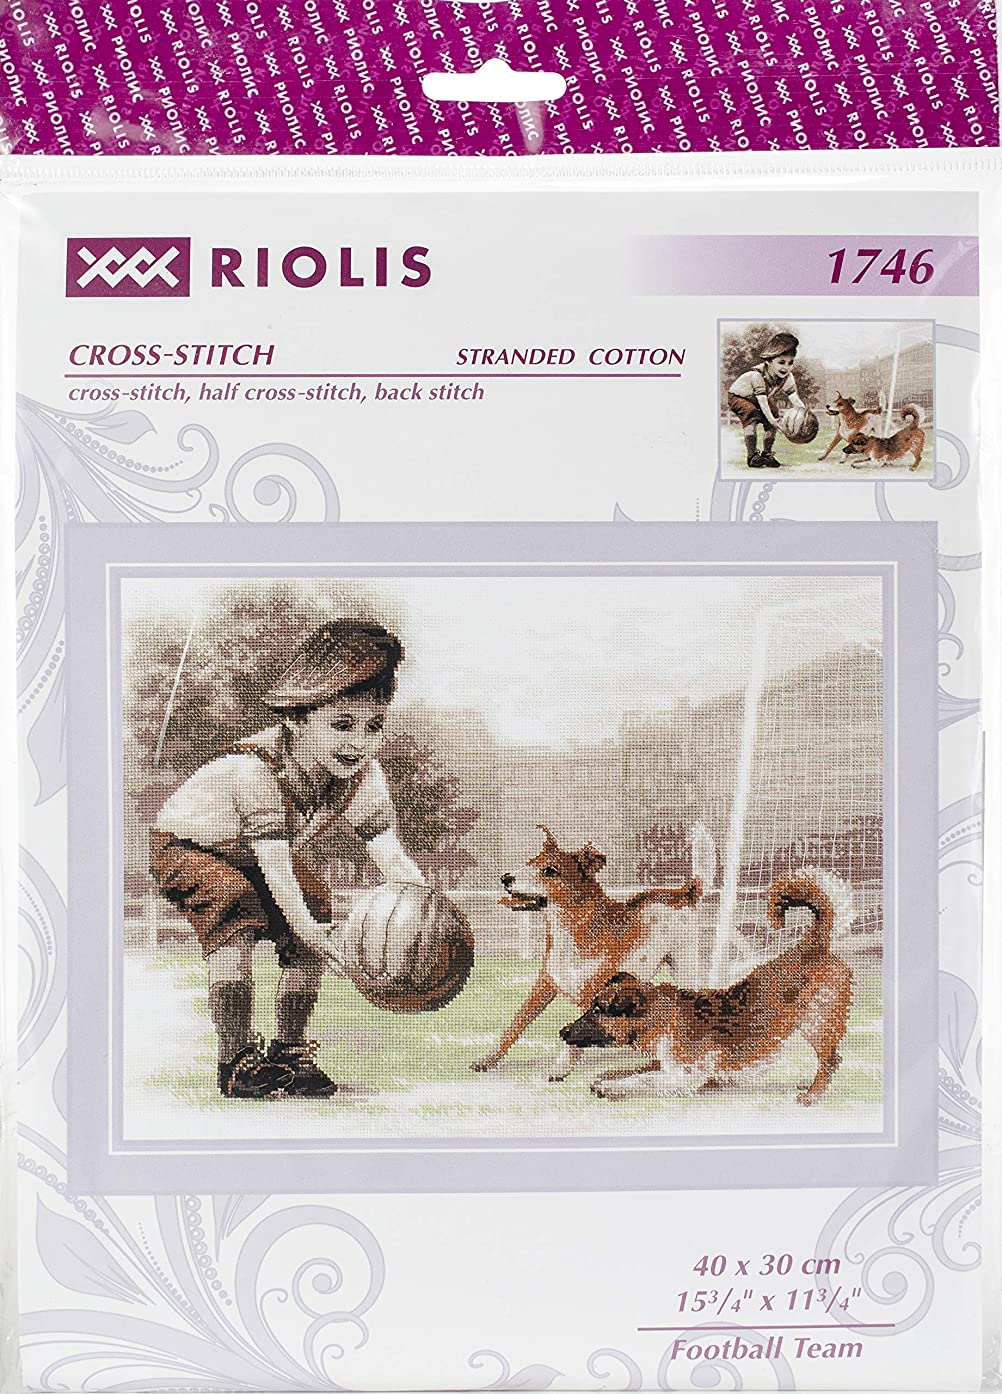 RIOLIS 1746 - Football Team - Counted Cross Stitch Kit 15?